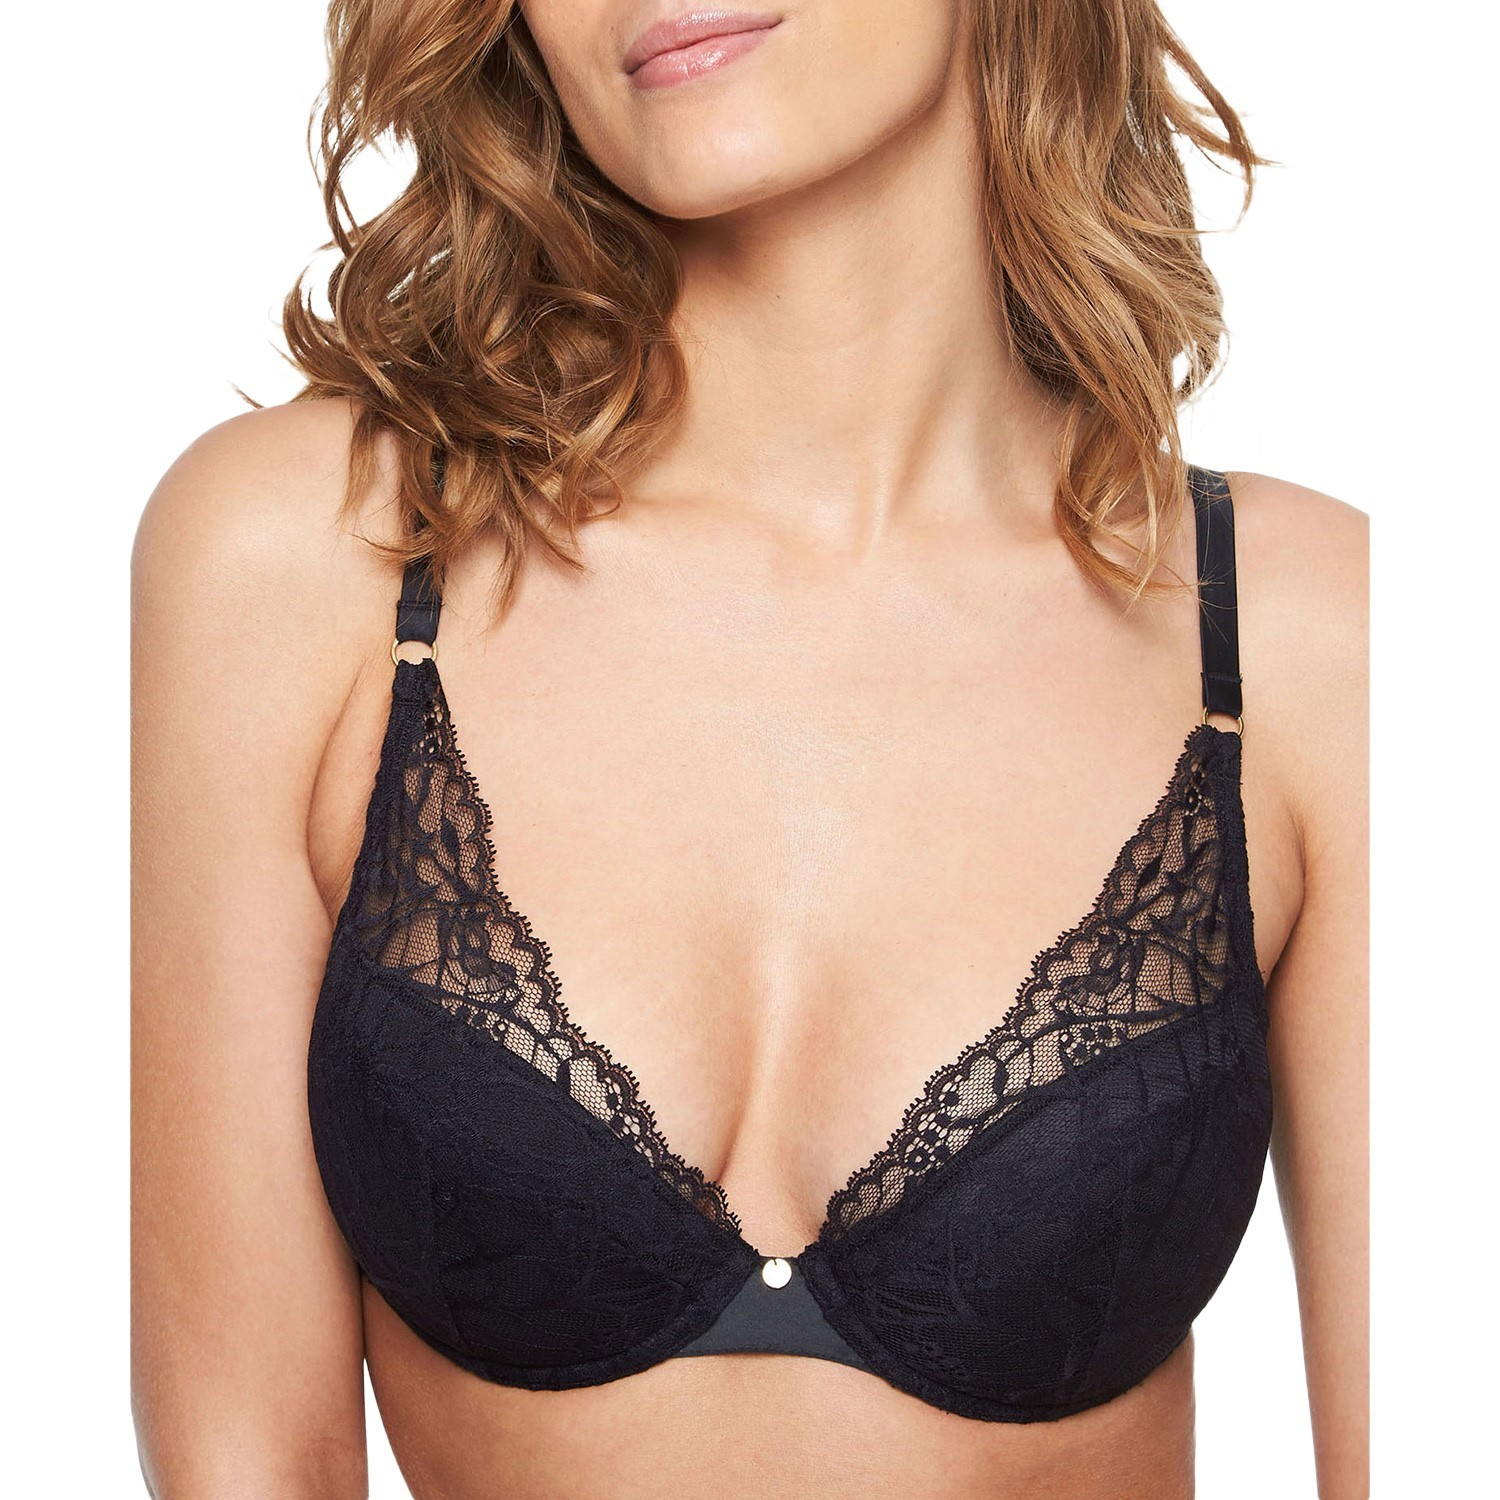 89d4ec12dc Chantelle Segur Push-up Bra - Push-up - Bras - Underwear - Timarco.eu